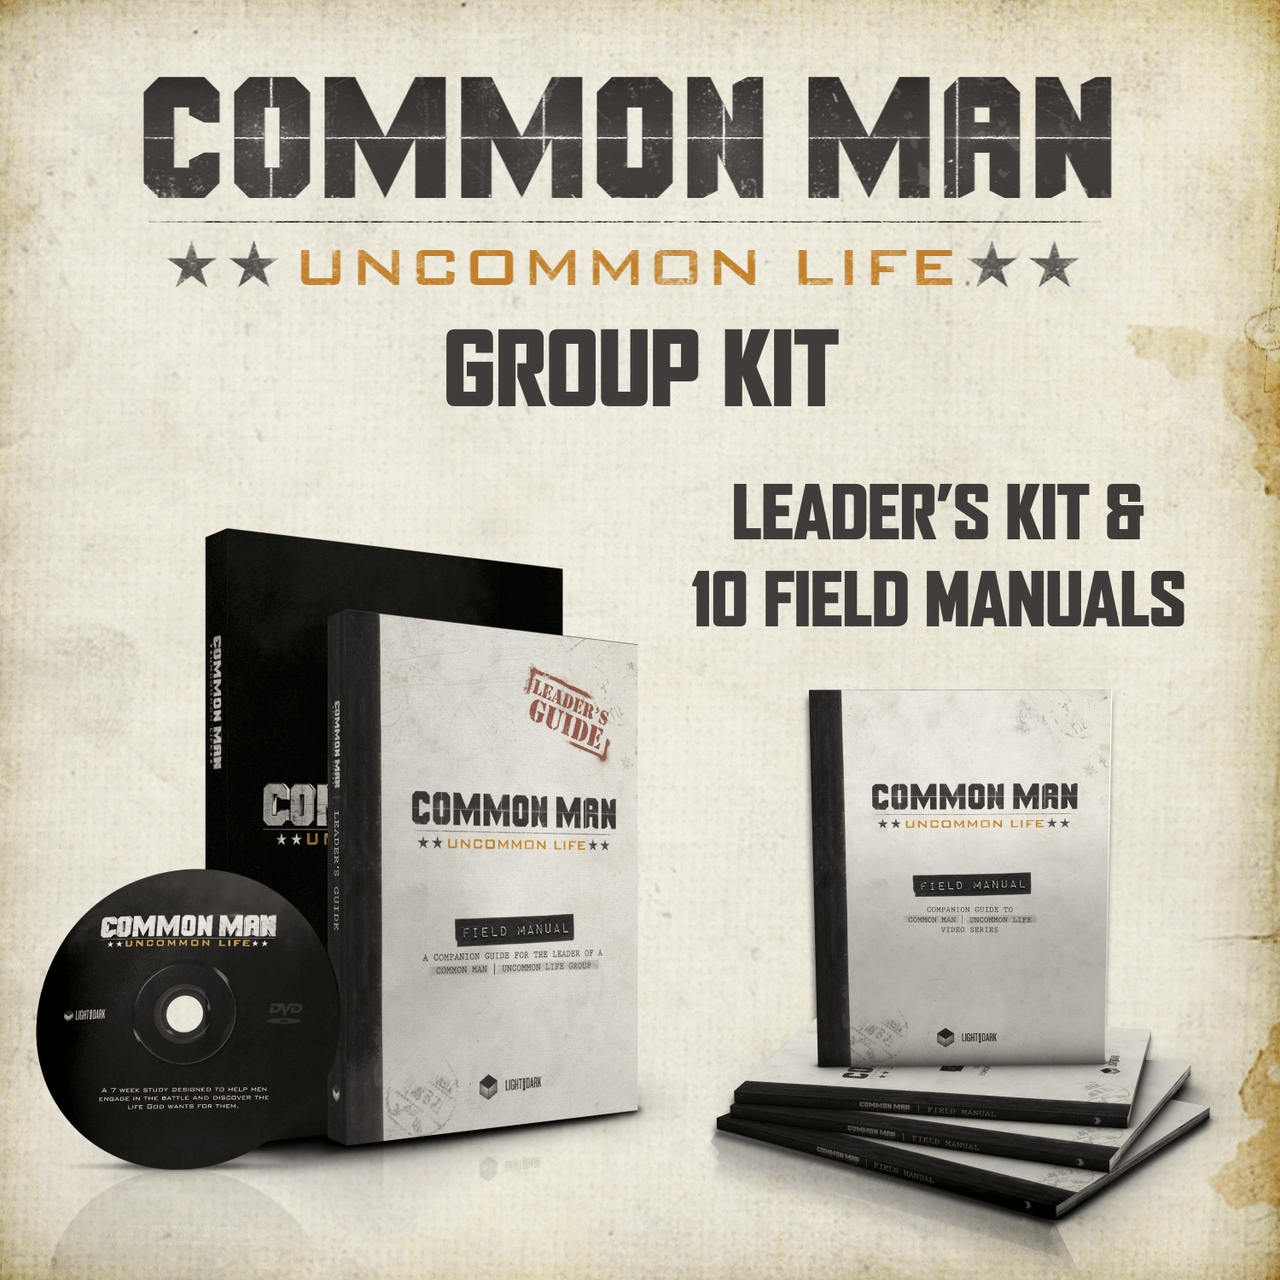 Common Man Uncommon Life Group Kit